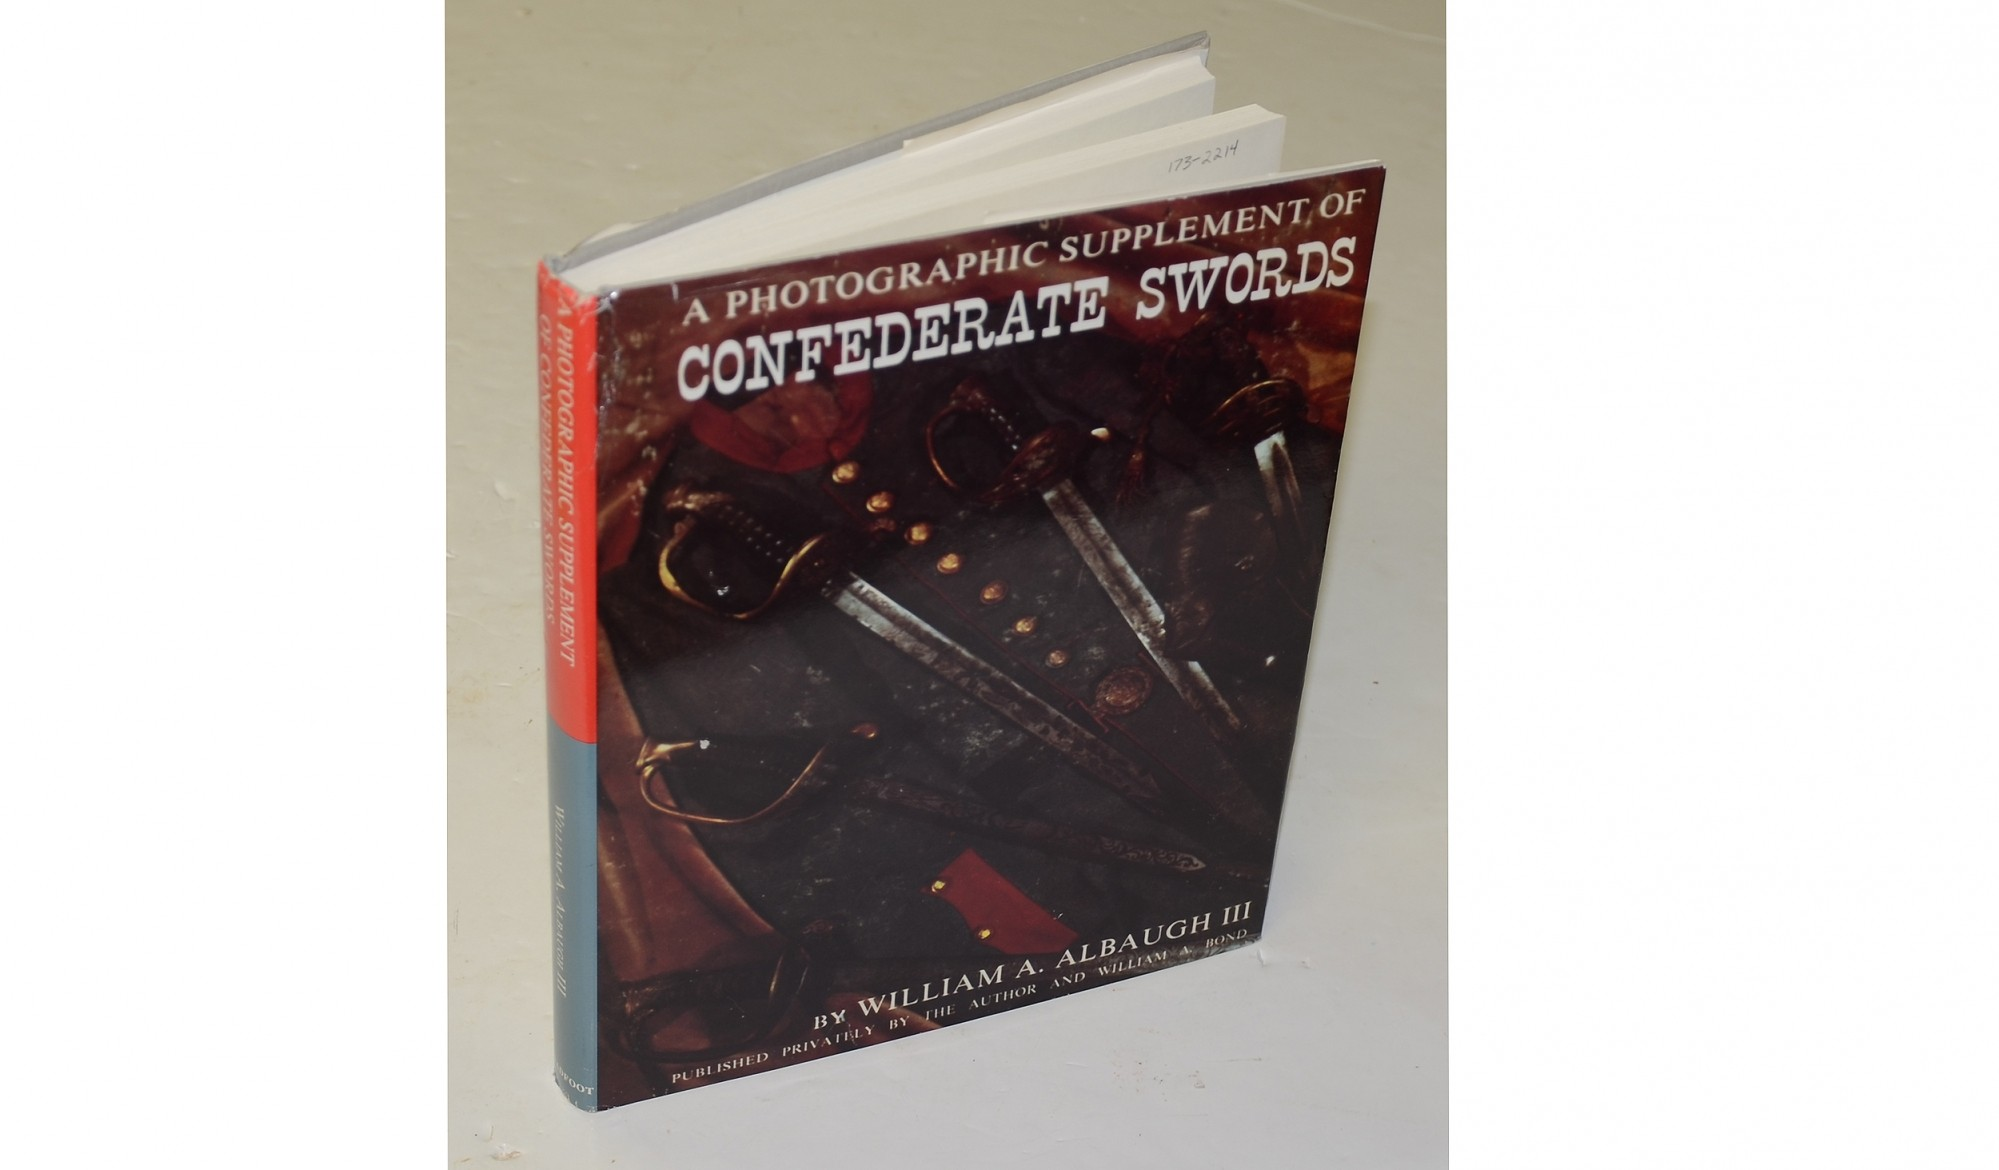 <I>A PHOTOGRAPHIC SUPPLEMENT OF CONFEDERATE SWORDS</I> BY WILLIAM A. ALBAUGH III